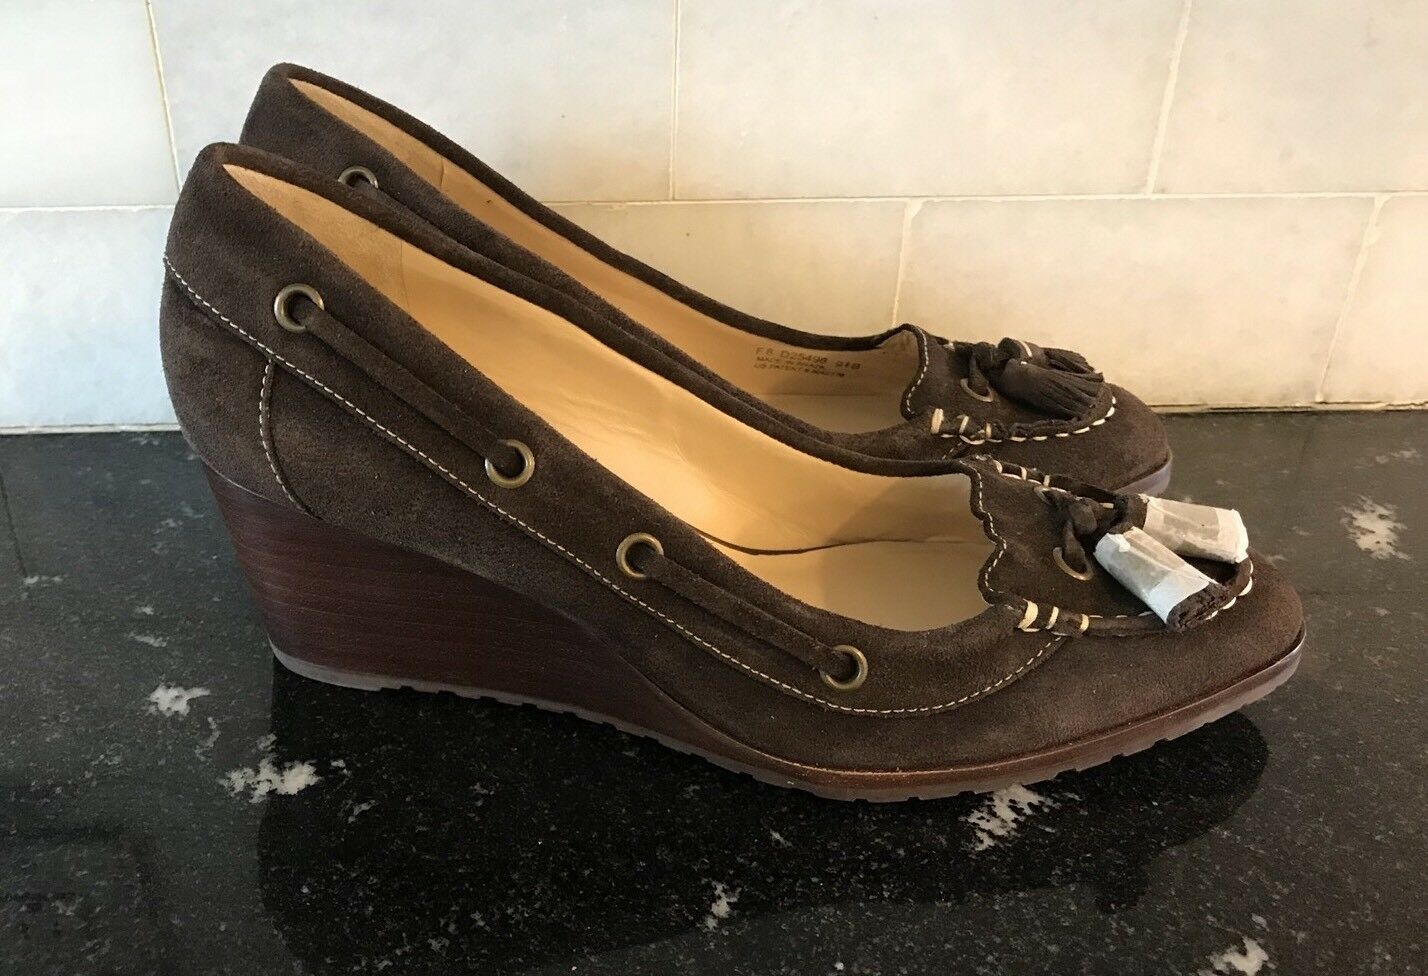 la migliore moda Cole Haan Calista Air Wedge Dark Dark Dark Chocolate Marrone Suede Dimensione 9.5B  275 MSRP NEW  risparmia fino al 50%